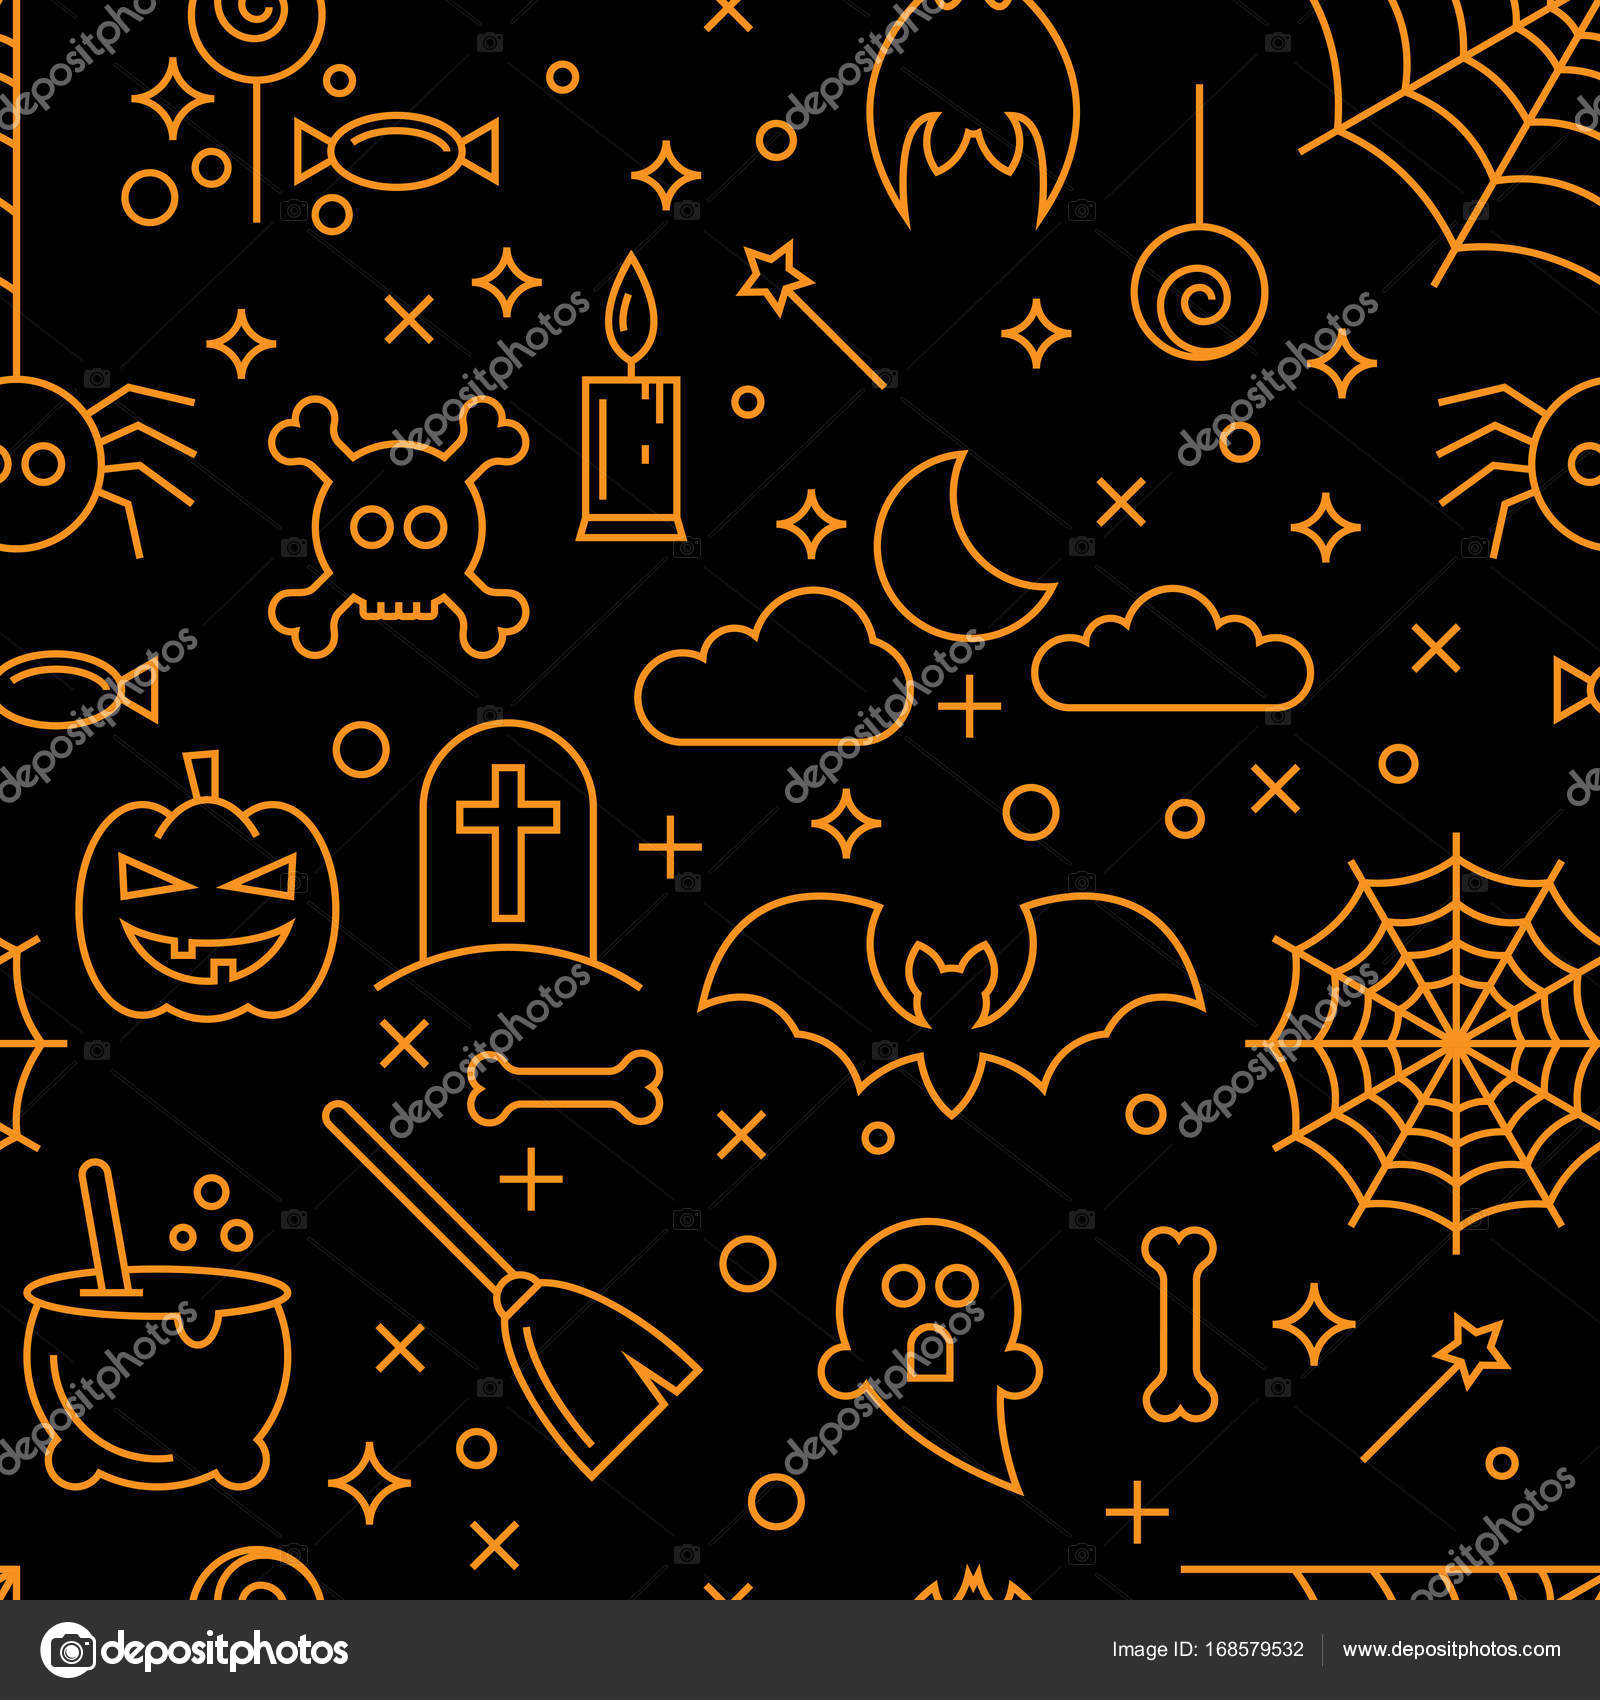 Cool Wallpaper Halloween Gold - depositphotos_168579532-stock-illustration-abstract-seamless-halloween-wallpaper-pattern  Image_4818.jpg